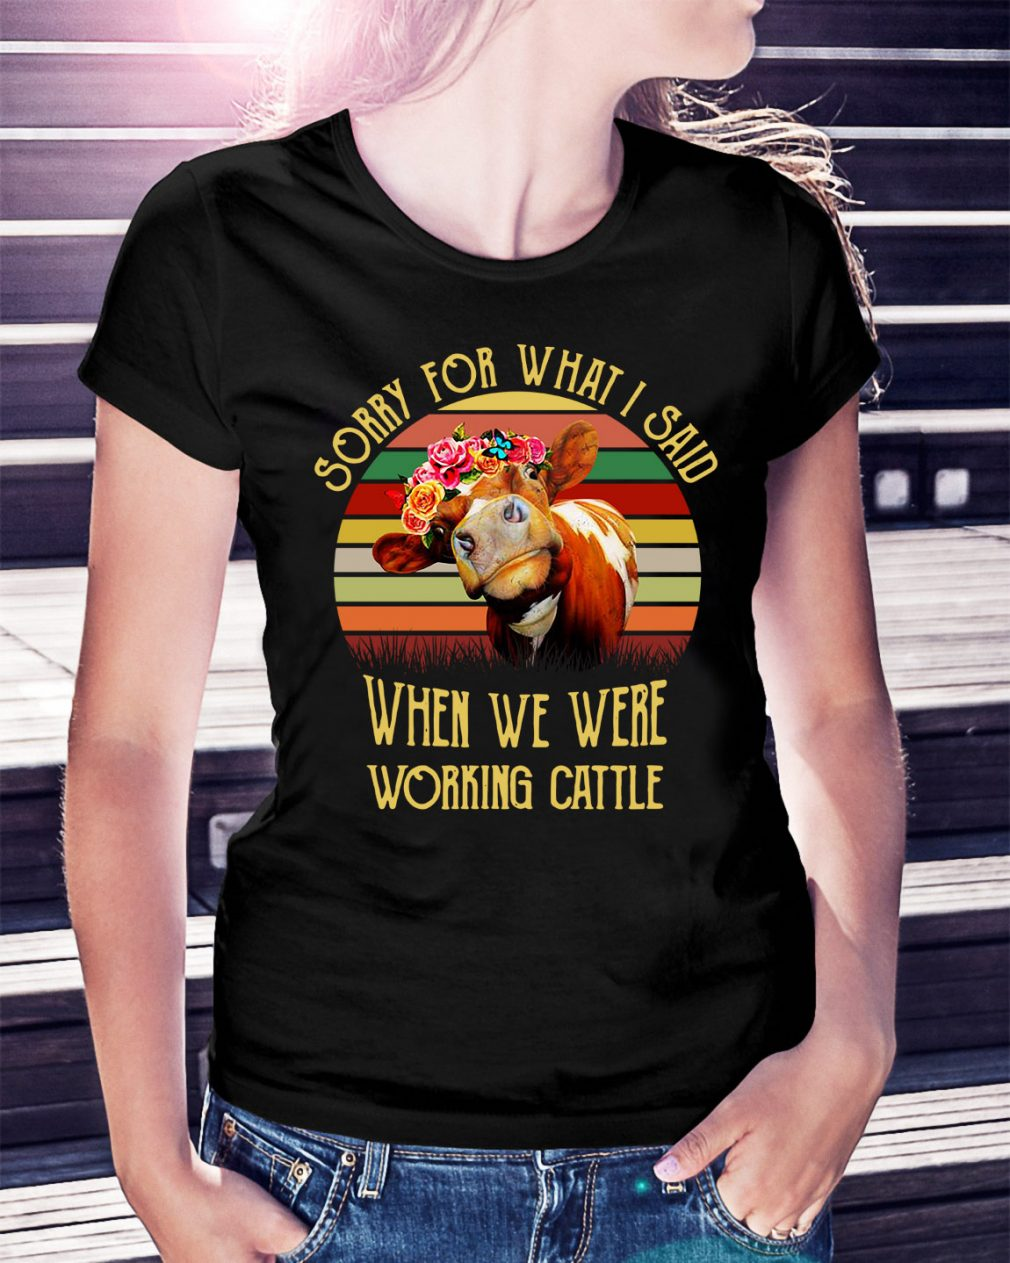 Cow sorry for what I said when we were working cattle Ladies Tee